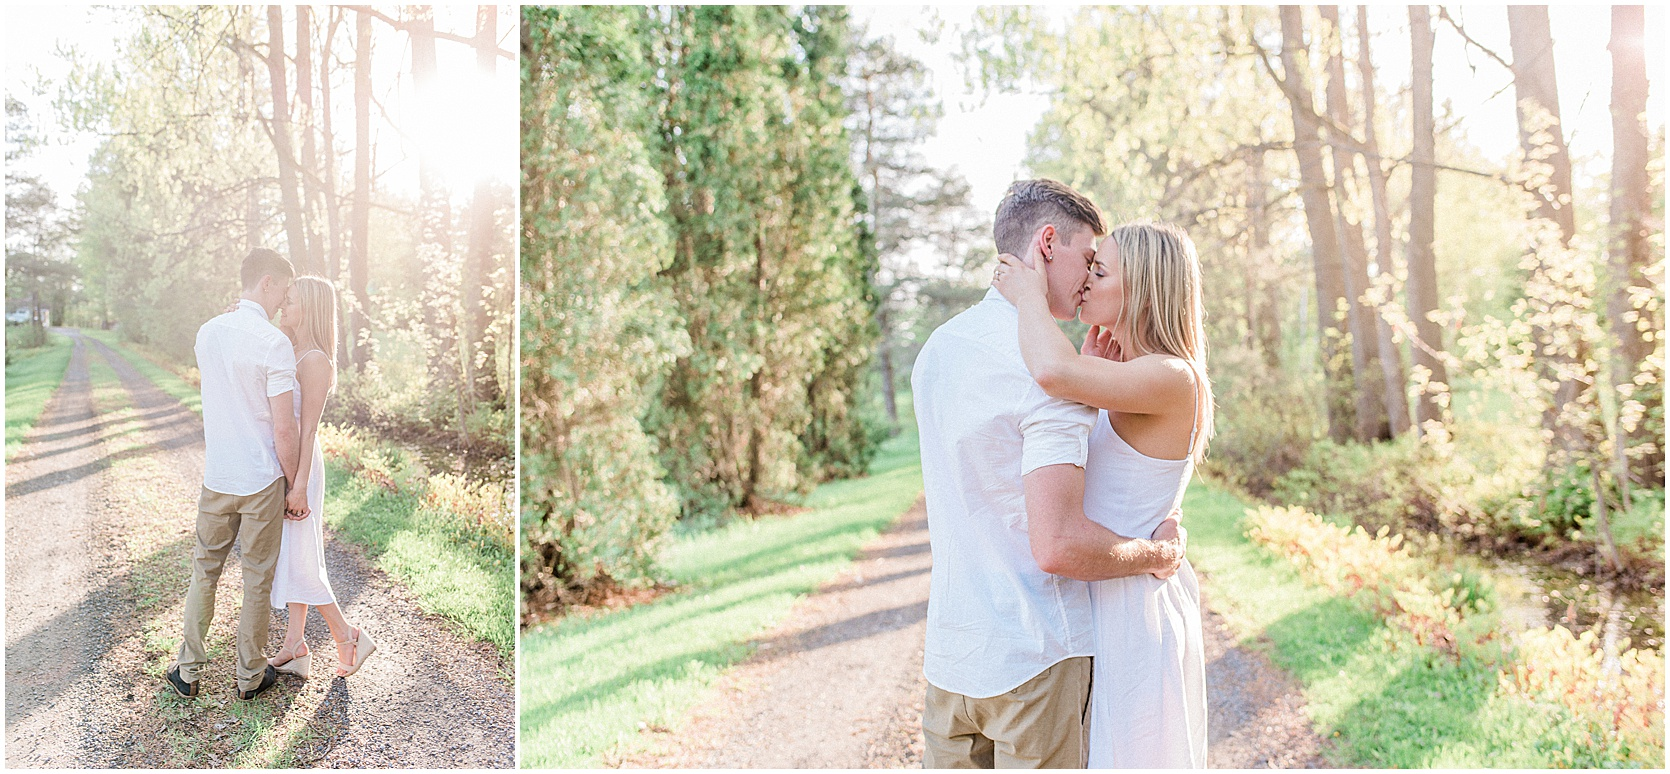 Ottawa engagement session, forest and country - light and airy photographer - photography by emma